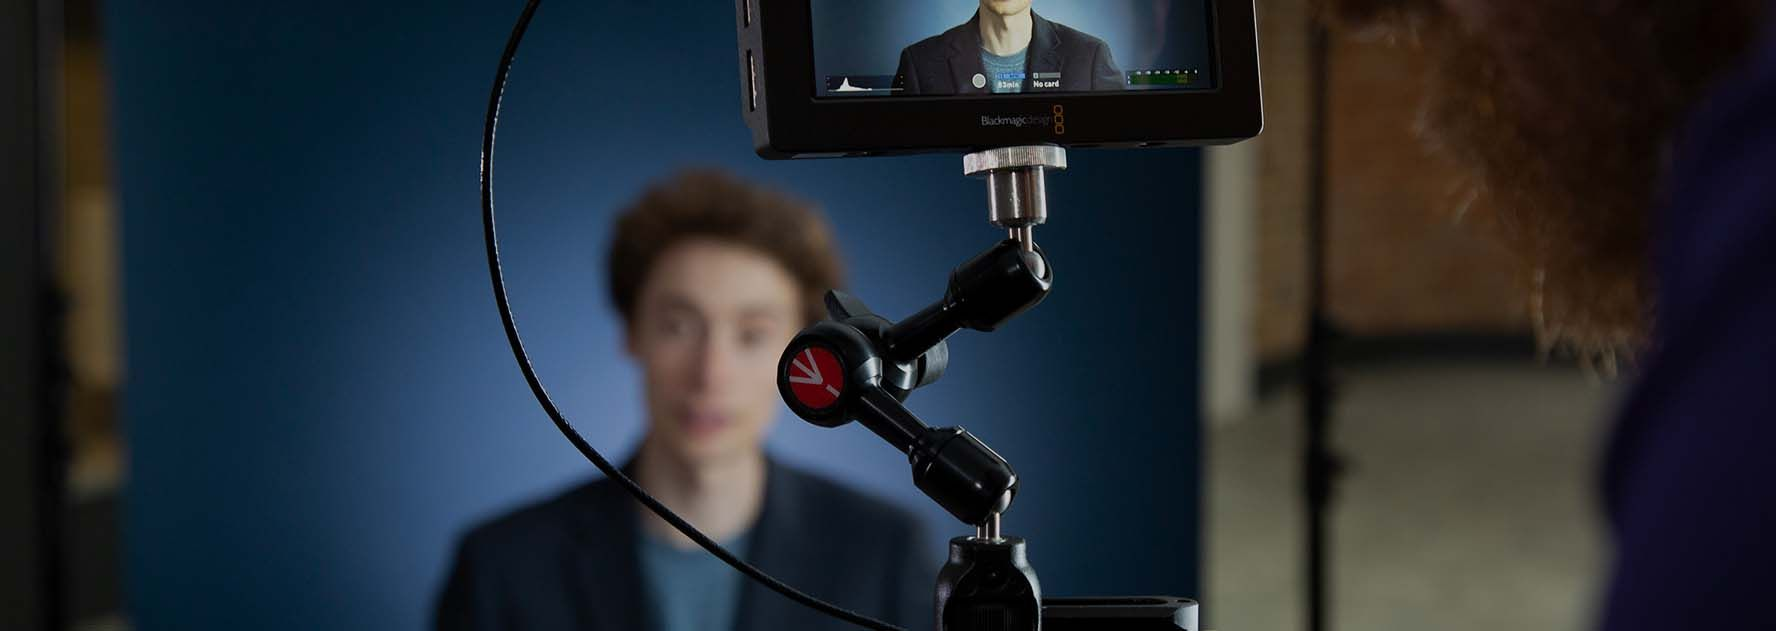 MF VIDEO 244 ARM - Manfrotto Lighting